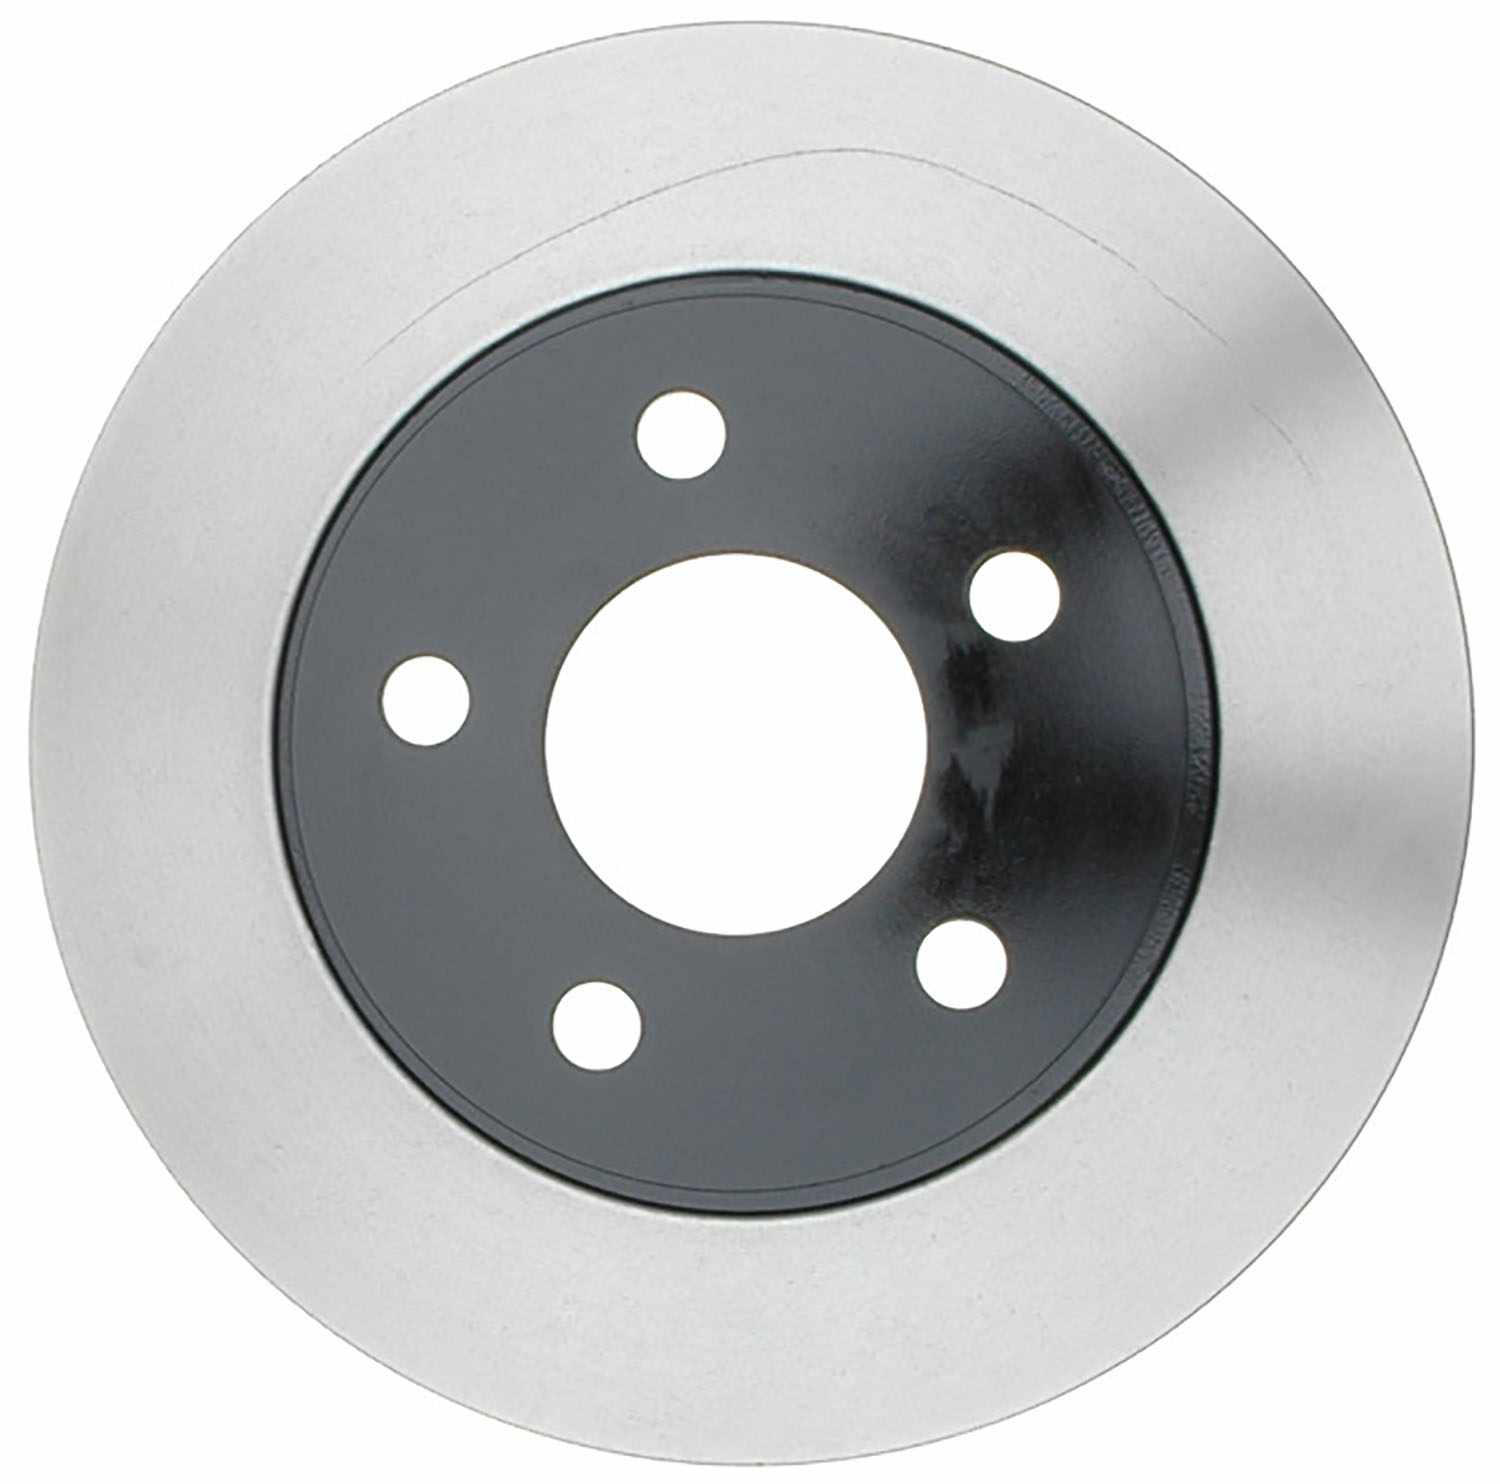 ACDELCO PROFESSIONAL BRAKES - Disc Brake Rotor (Rear) - ADU 18A953